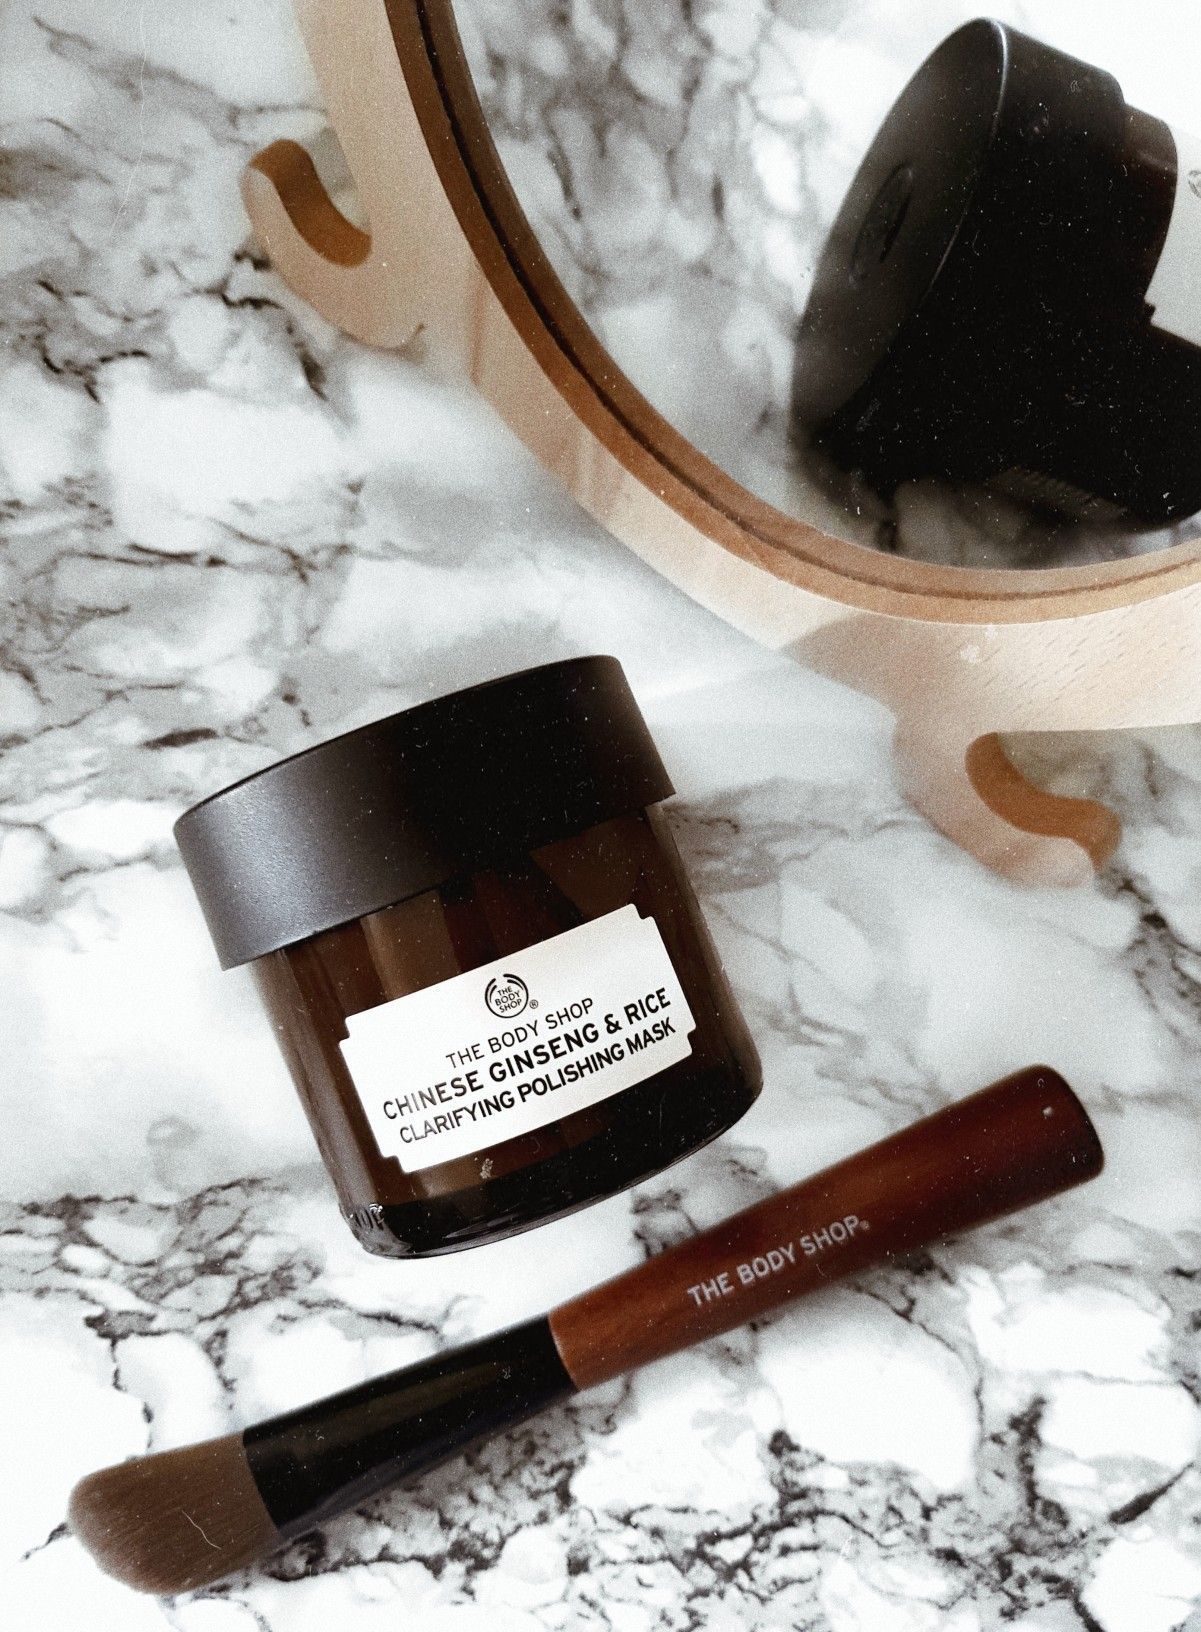 Chinese Ginseng and rice face mask, The Body Shop The